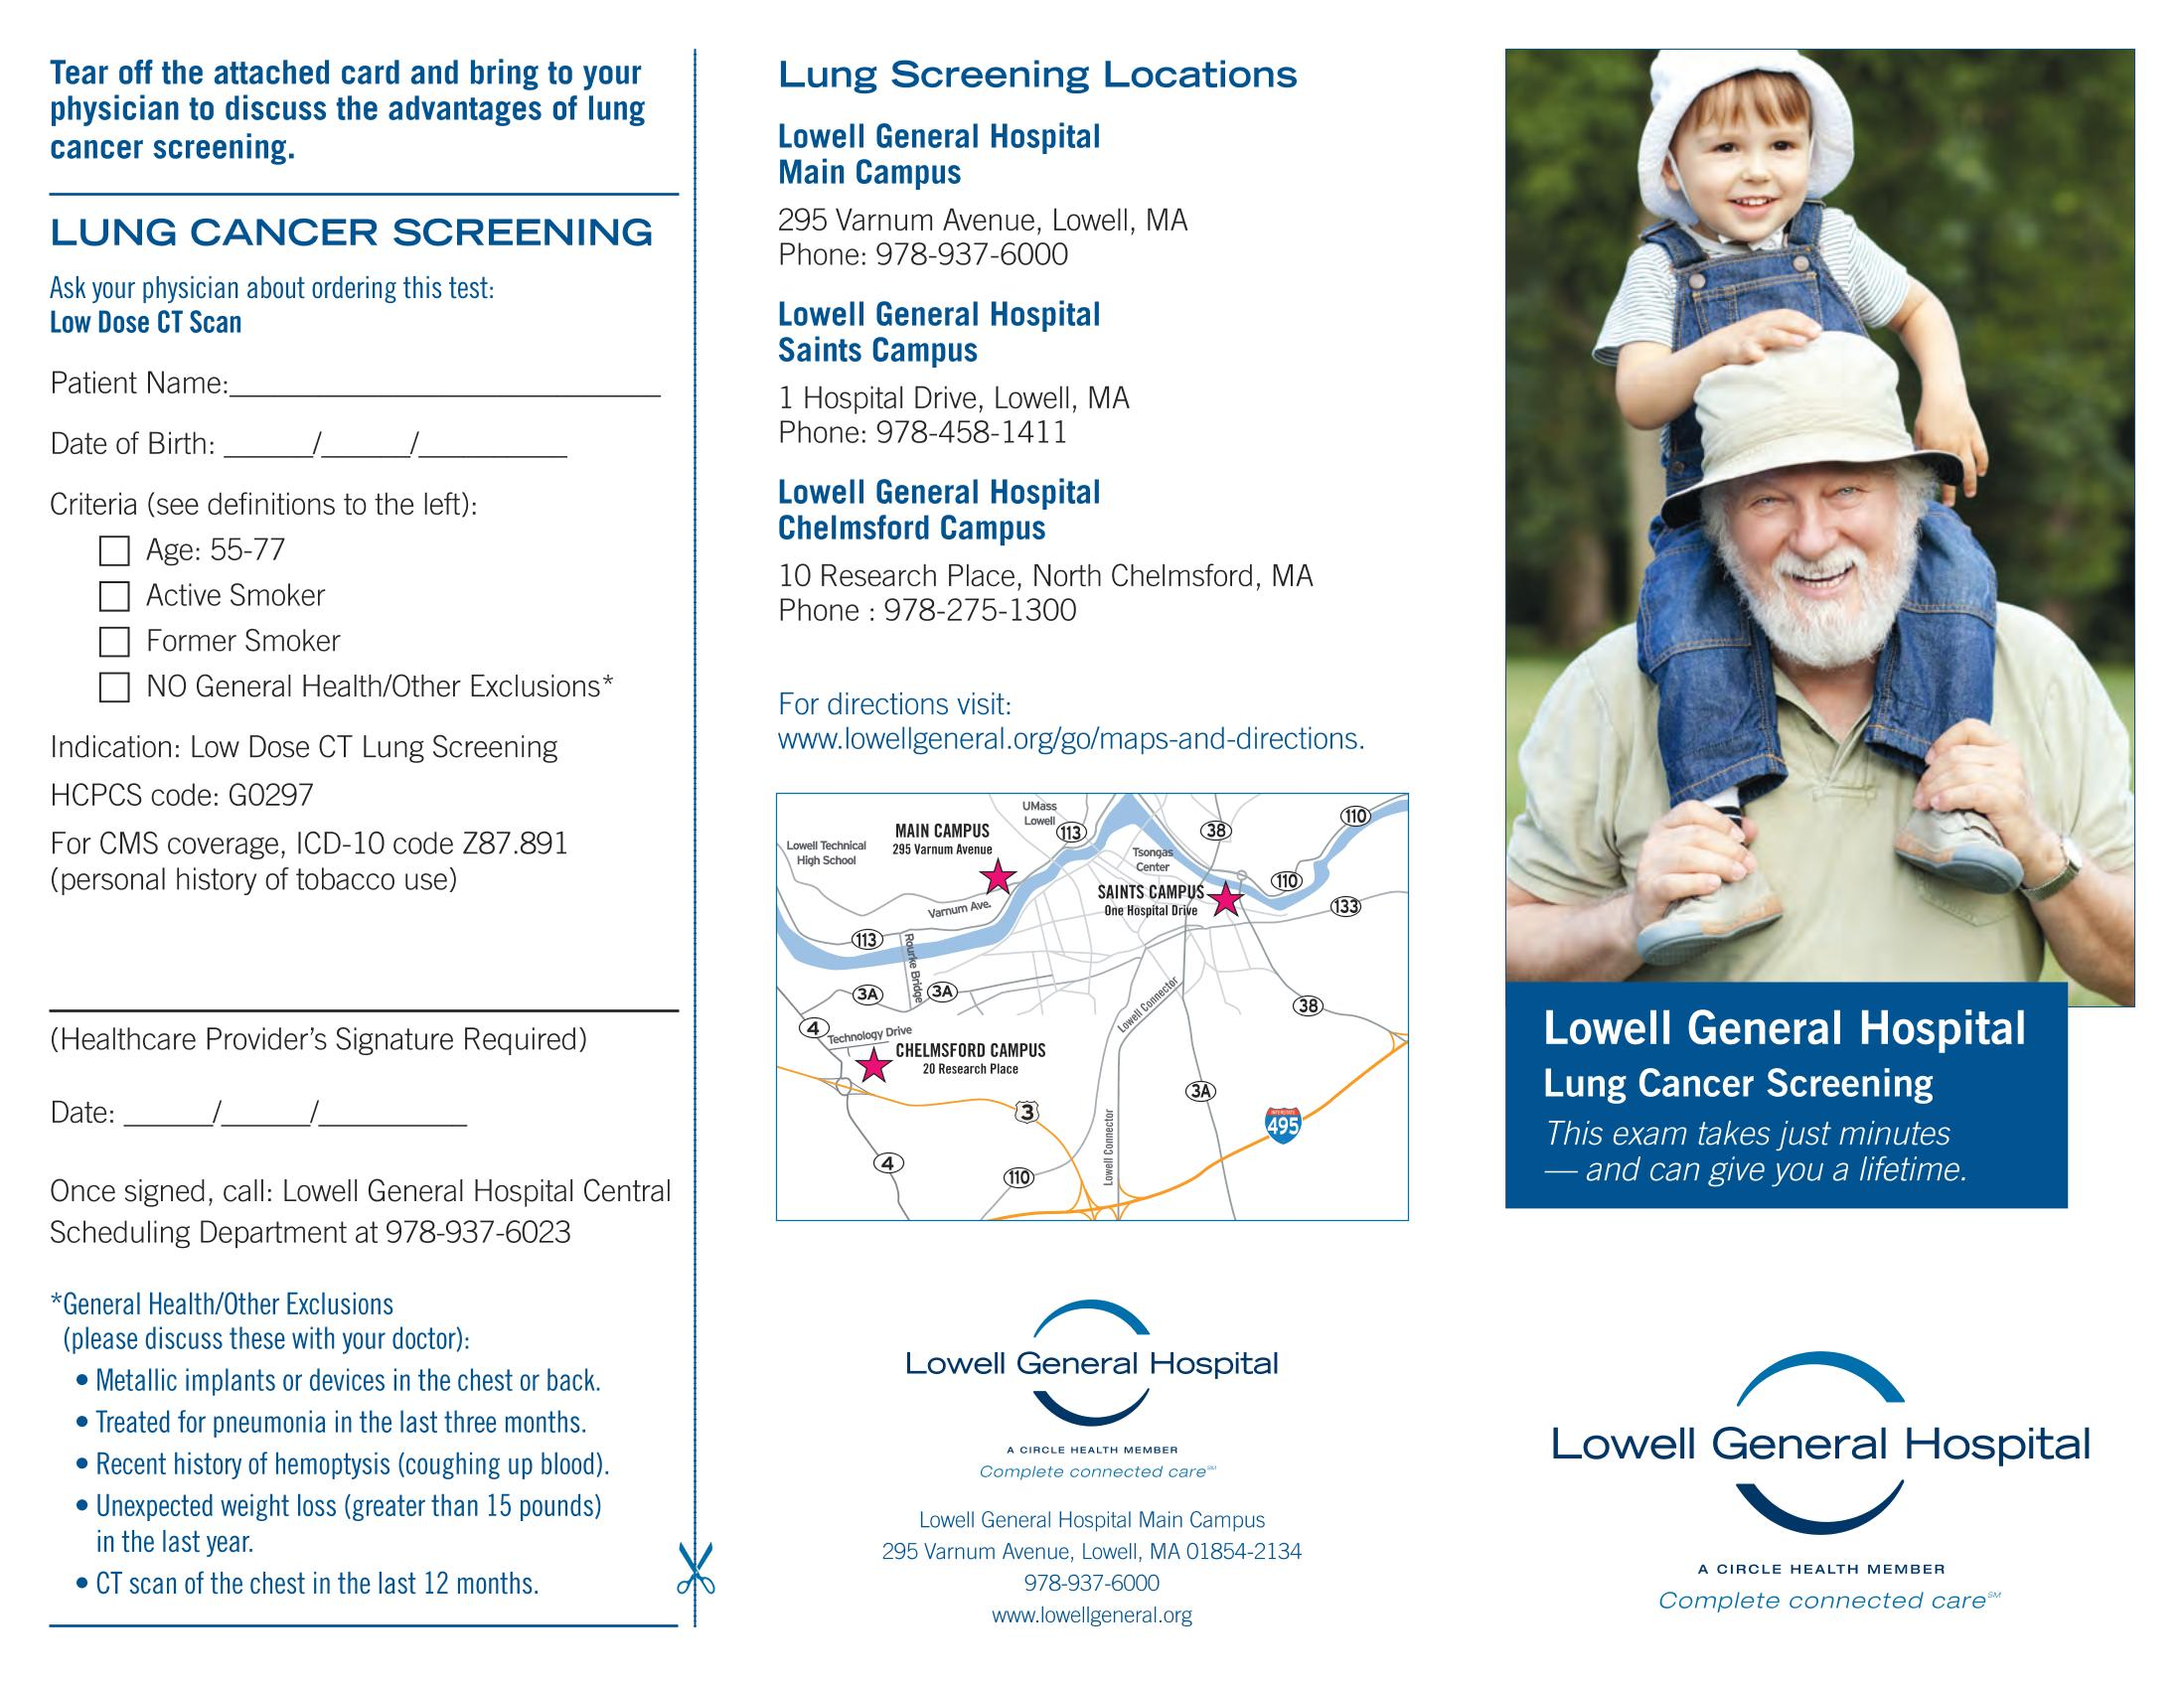 Lung Cancer Screening brochure